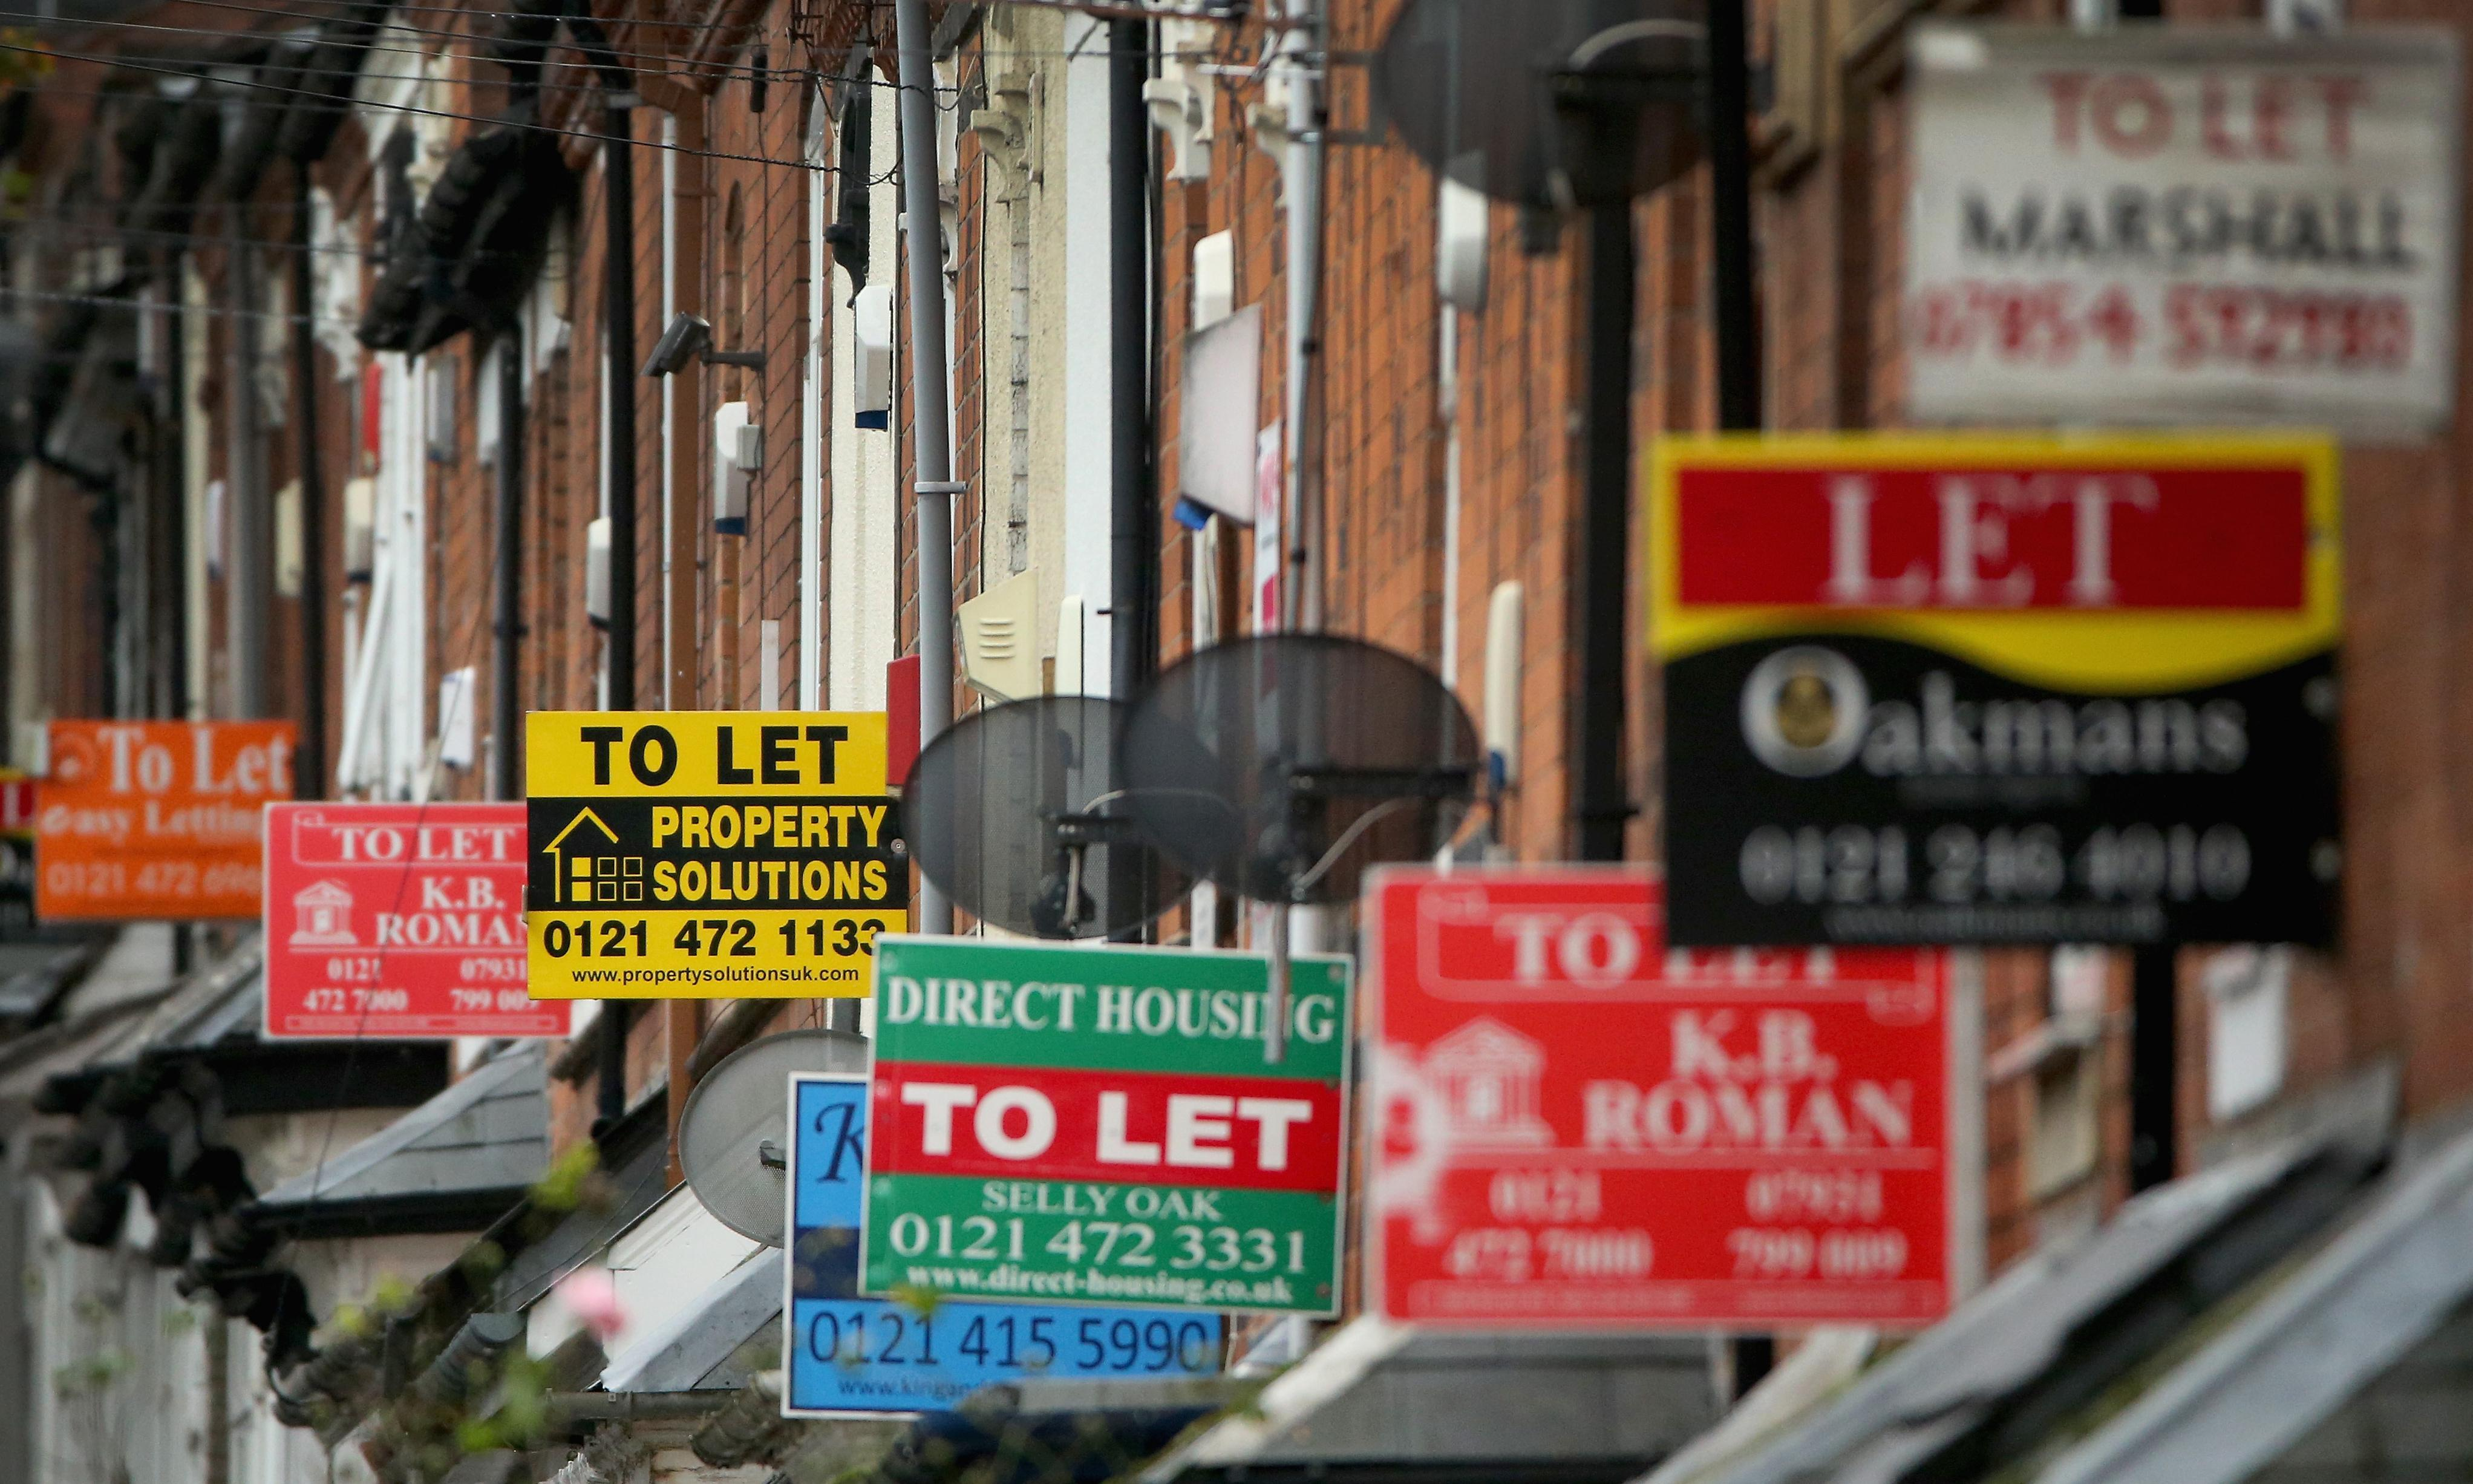 The Guardian view on housing inequality: the young are paying